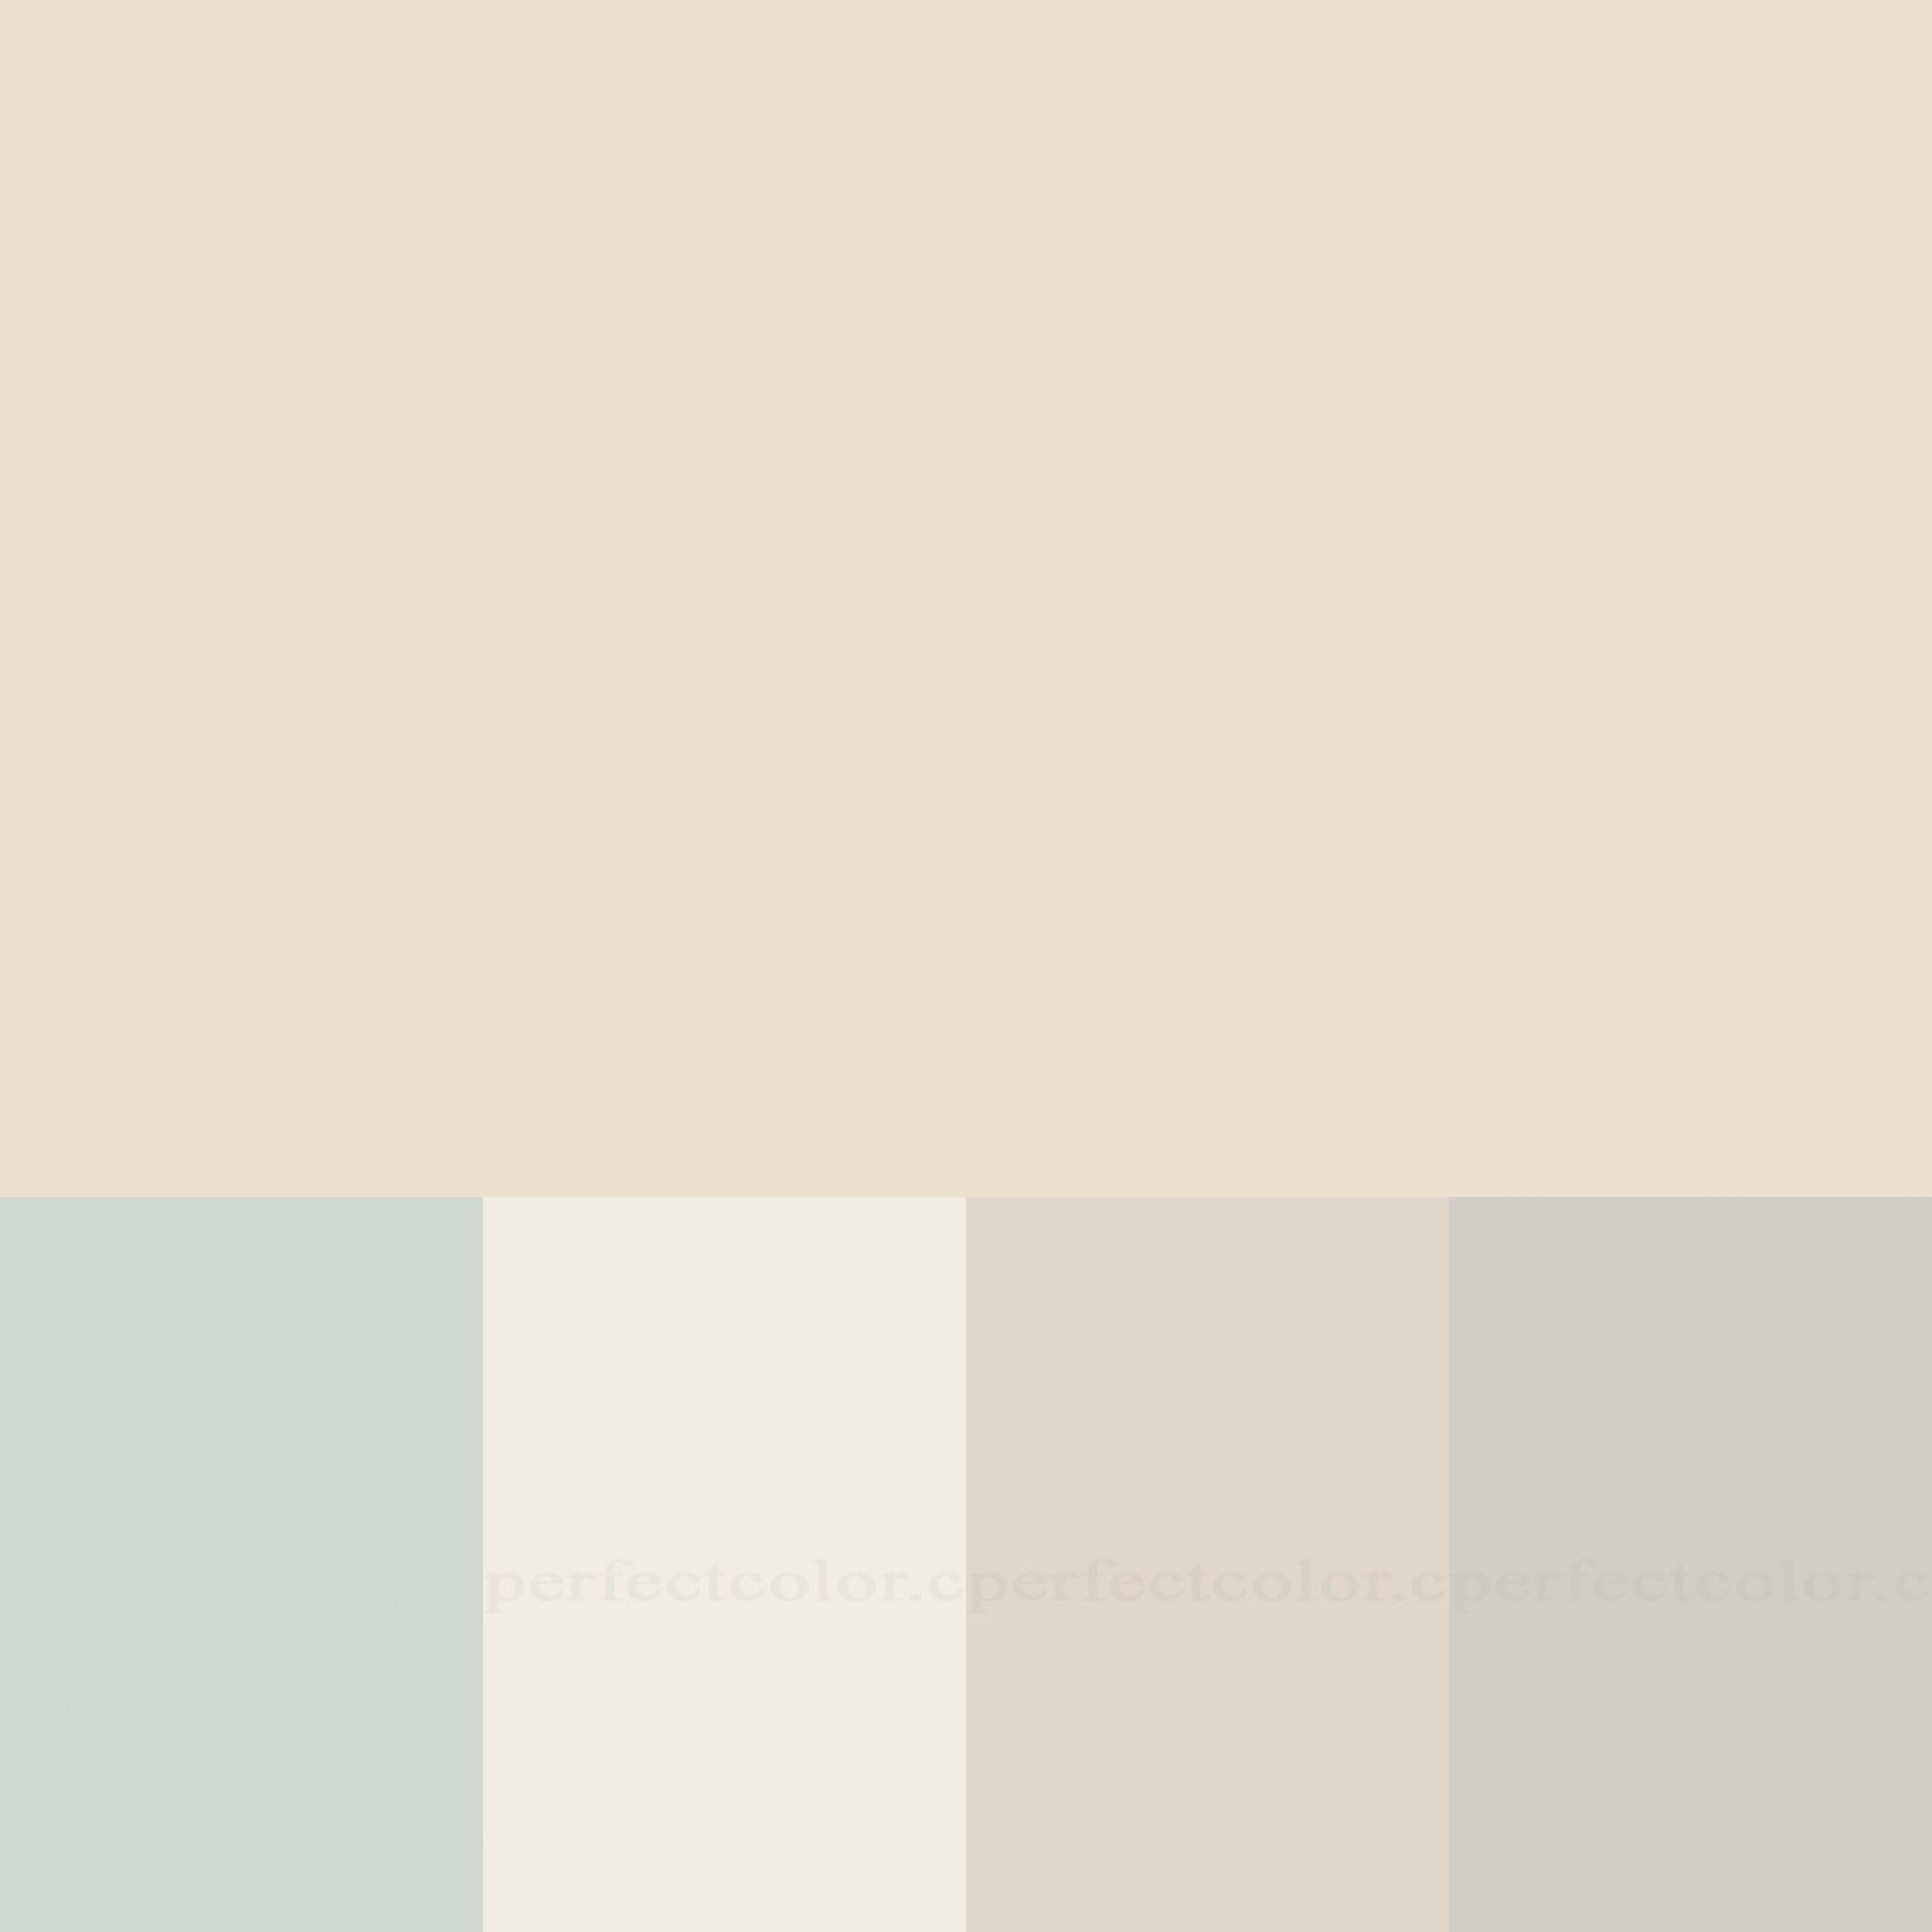 House Scheme Behr Ivory Lace Behr Serene Journey Behr Swiss Coffee Behr Chocolate Froth Dutch Boy Na Cottage Paint Colors House Color Schemes House Colors